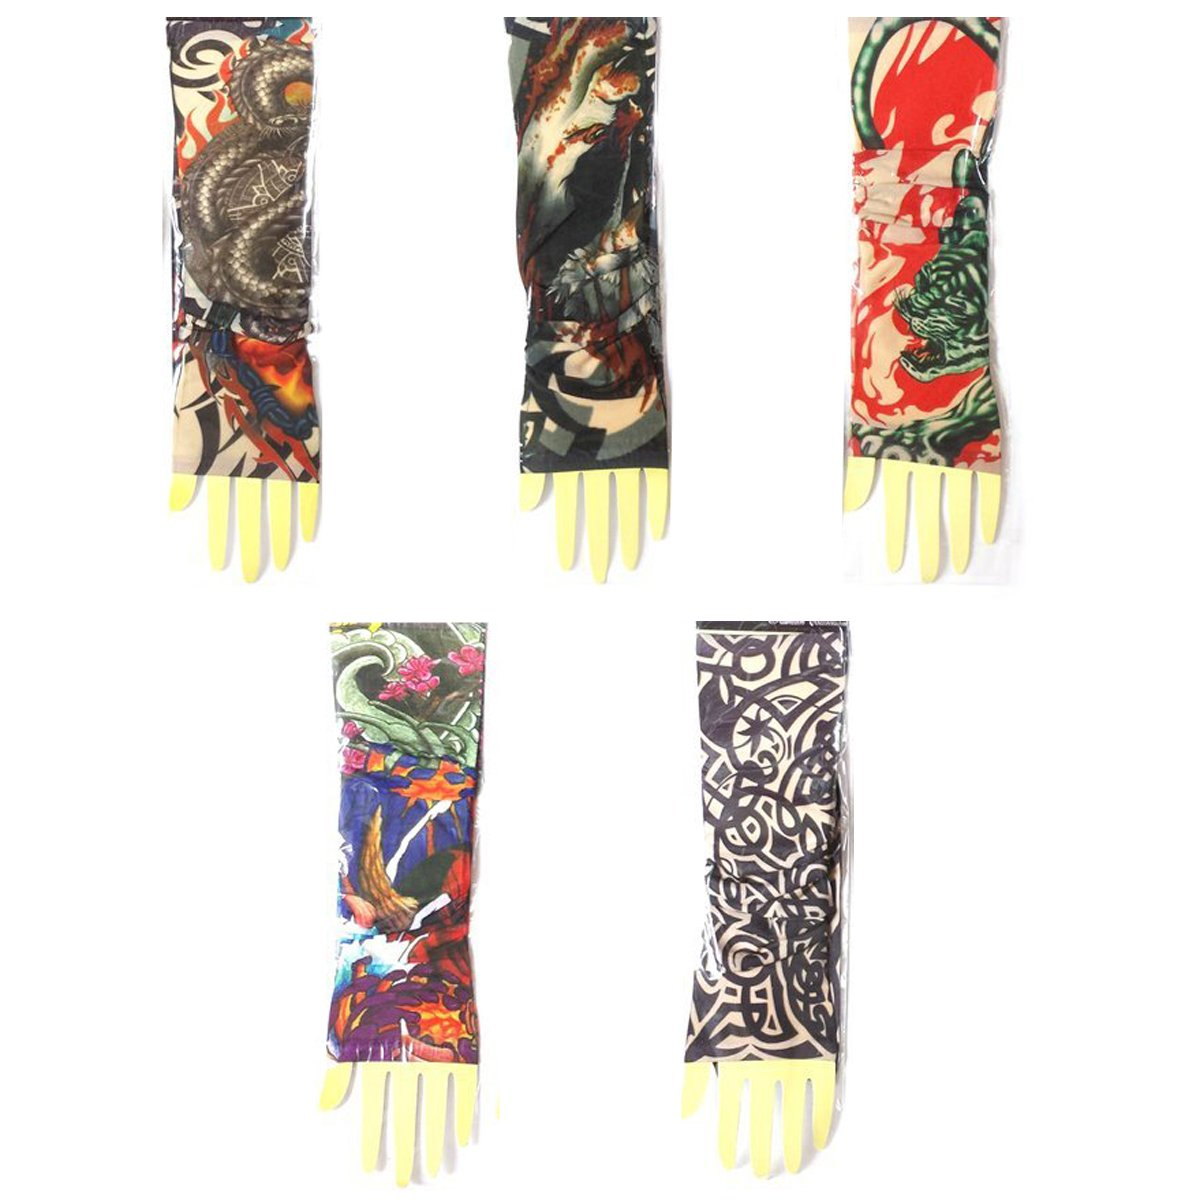 Hot 5 Pair (10 Fake) Seamless Temporary Tattoo Sleeves Body Art Arm Stockings for sale